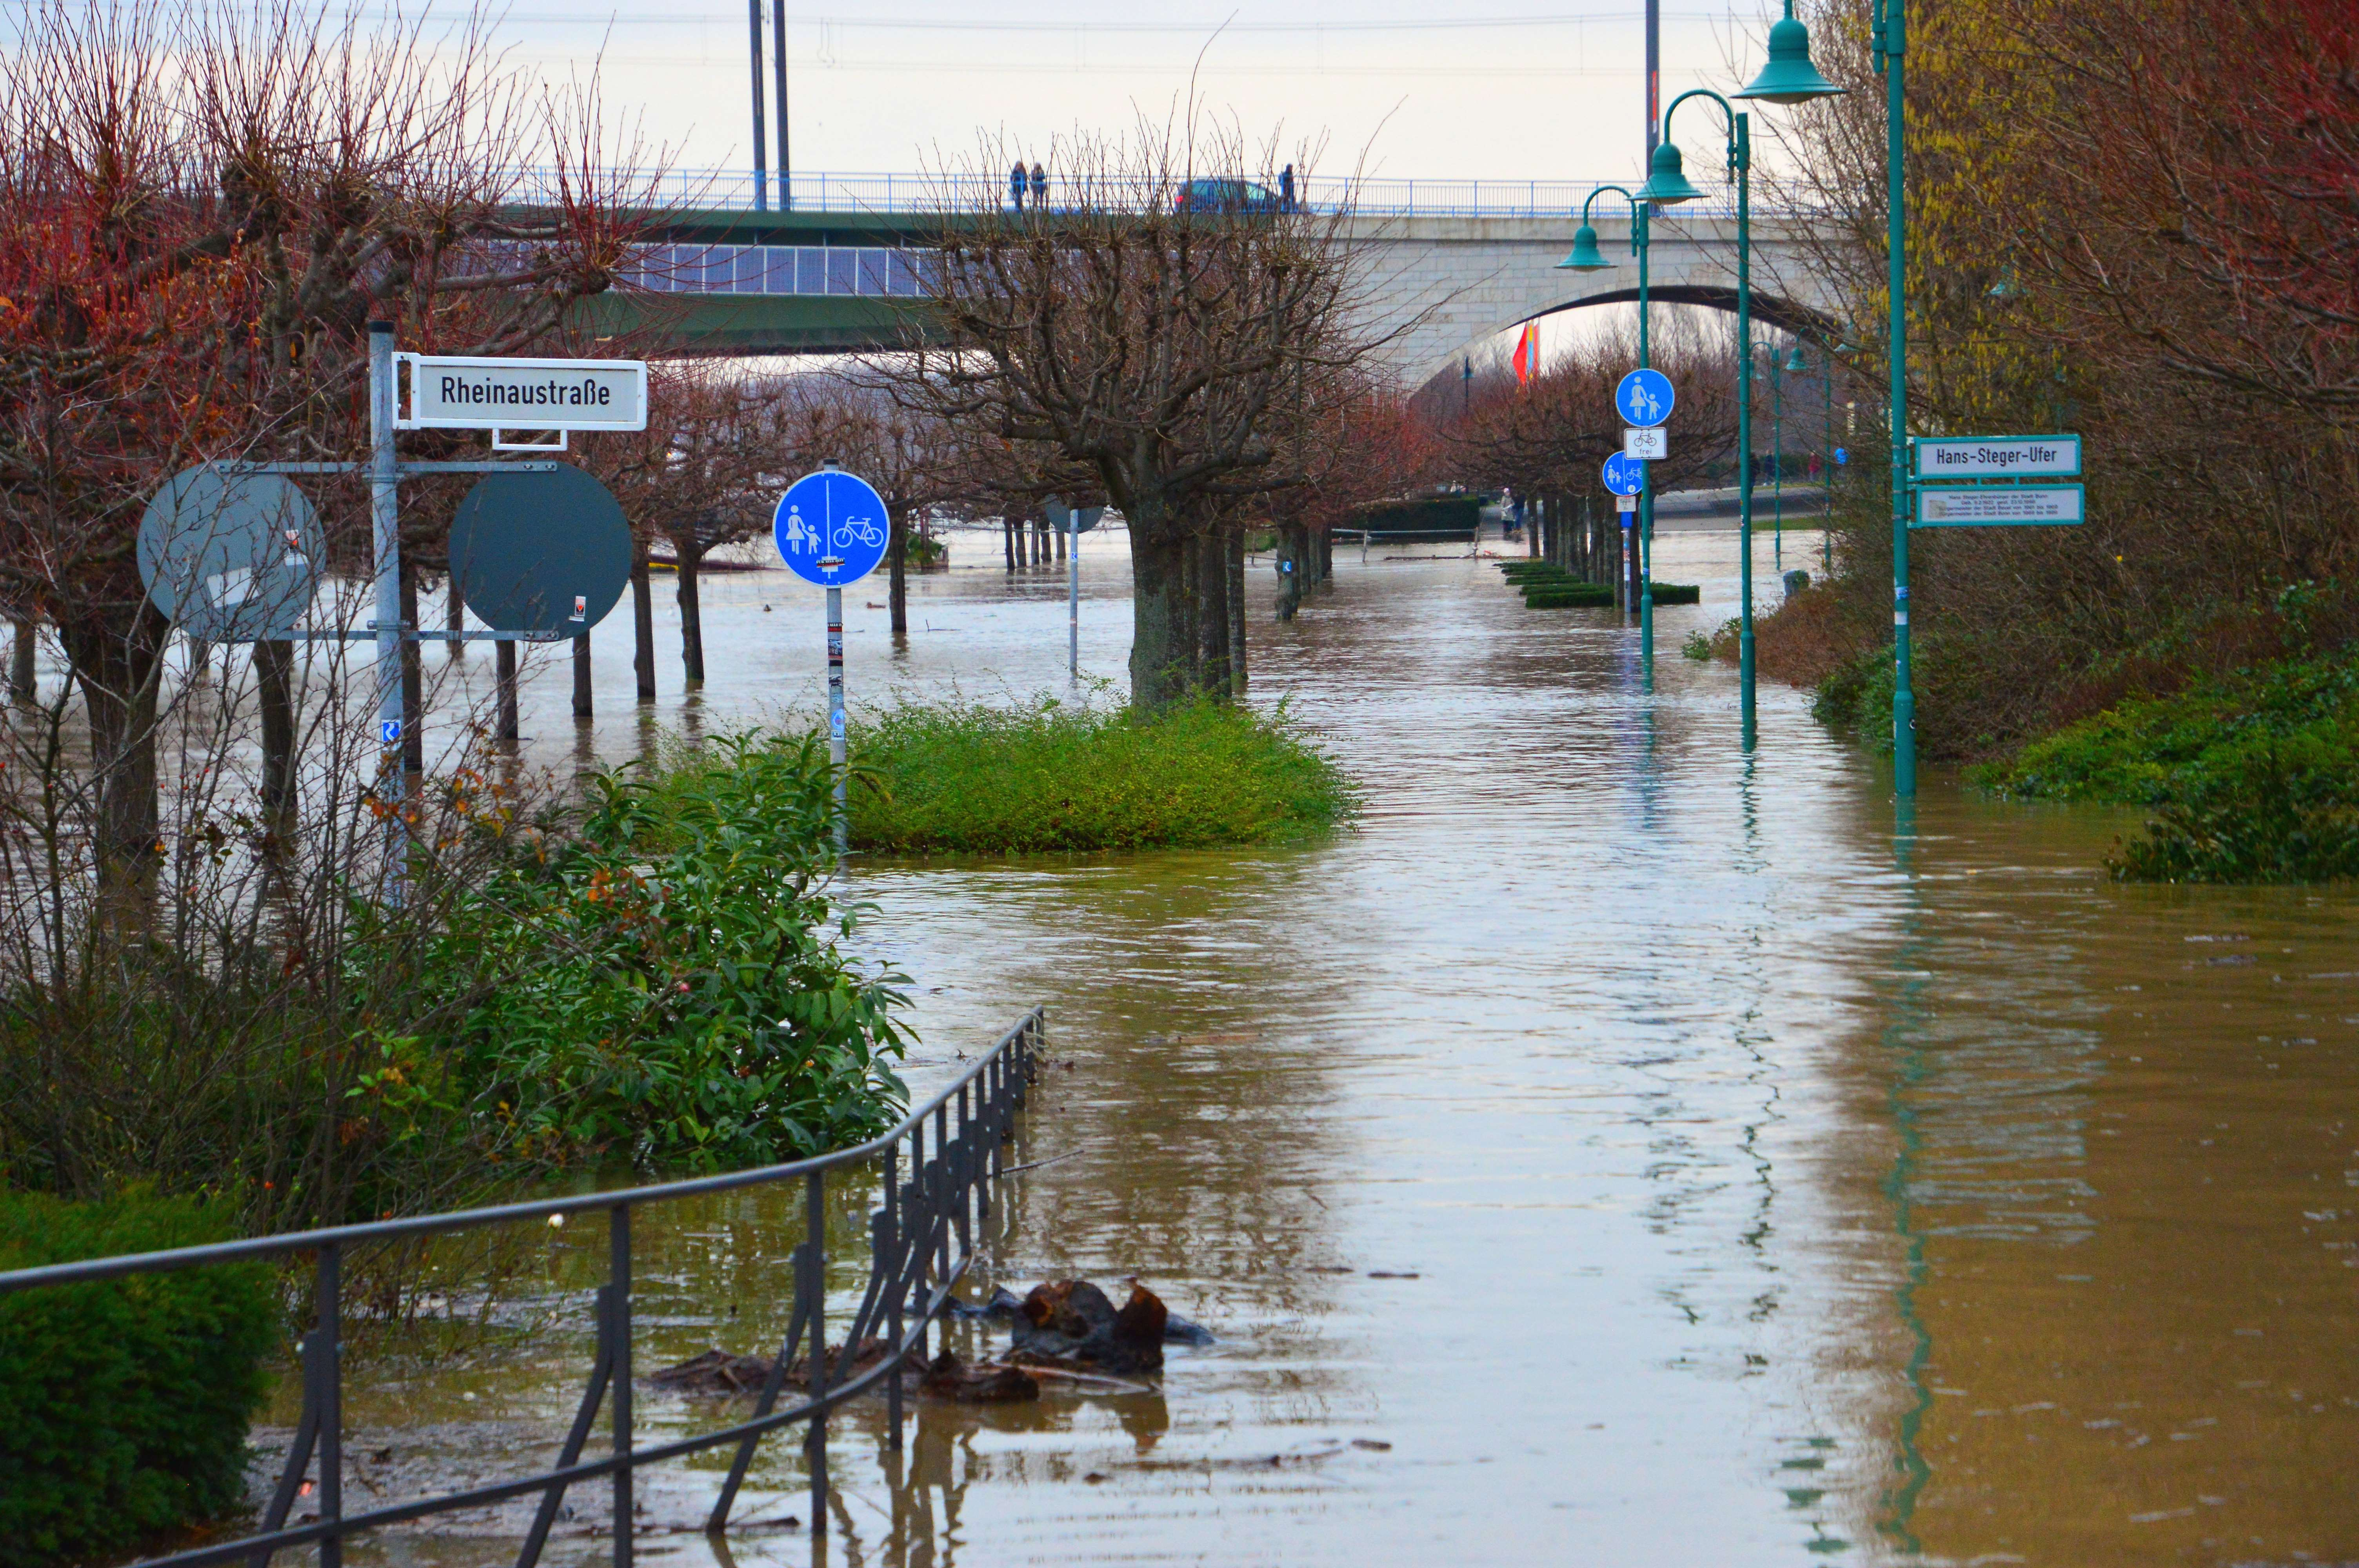 Over 45 Dead, 1300 Missing In Catastrophic Western Europe Floods